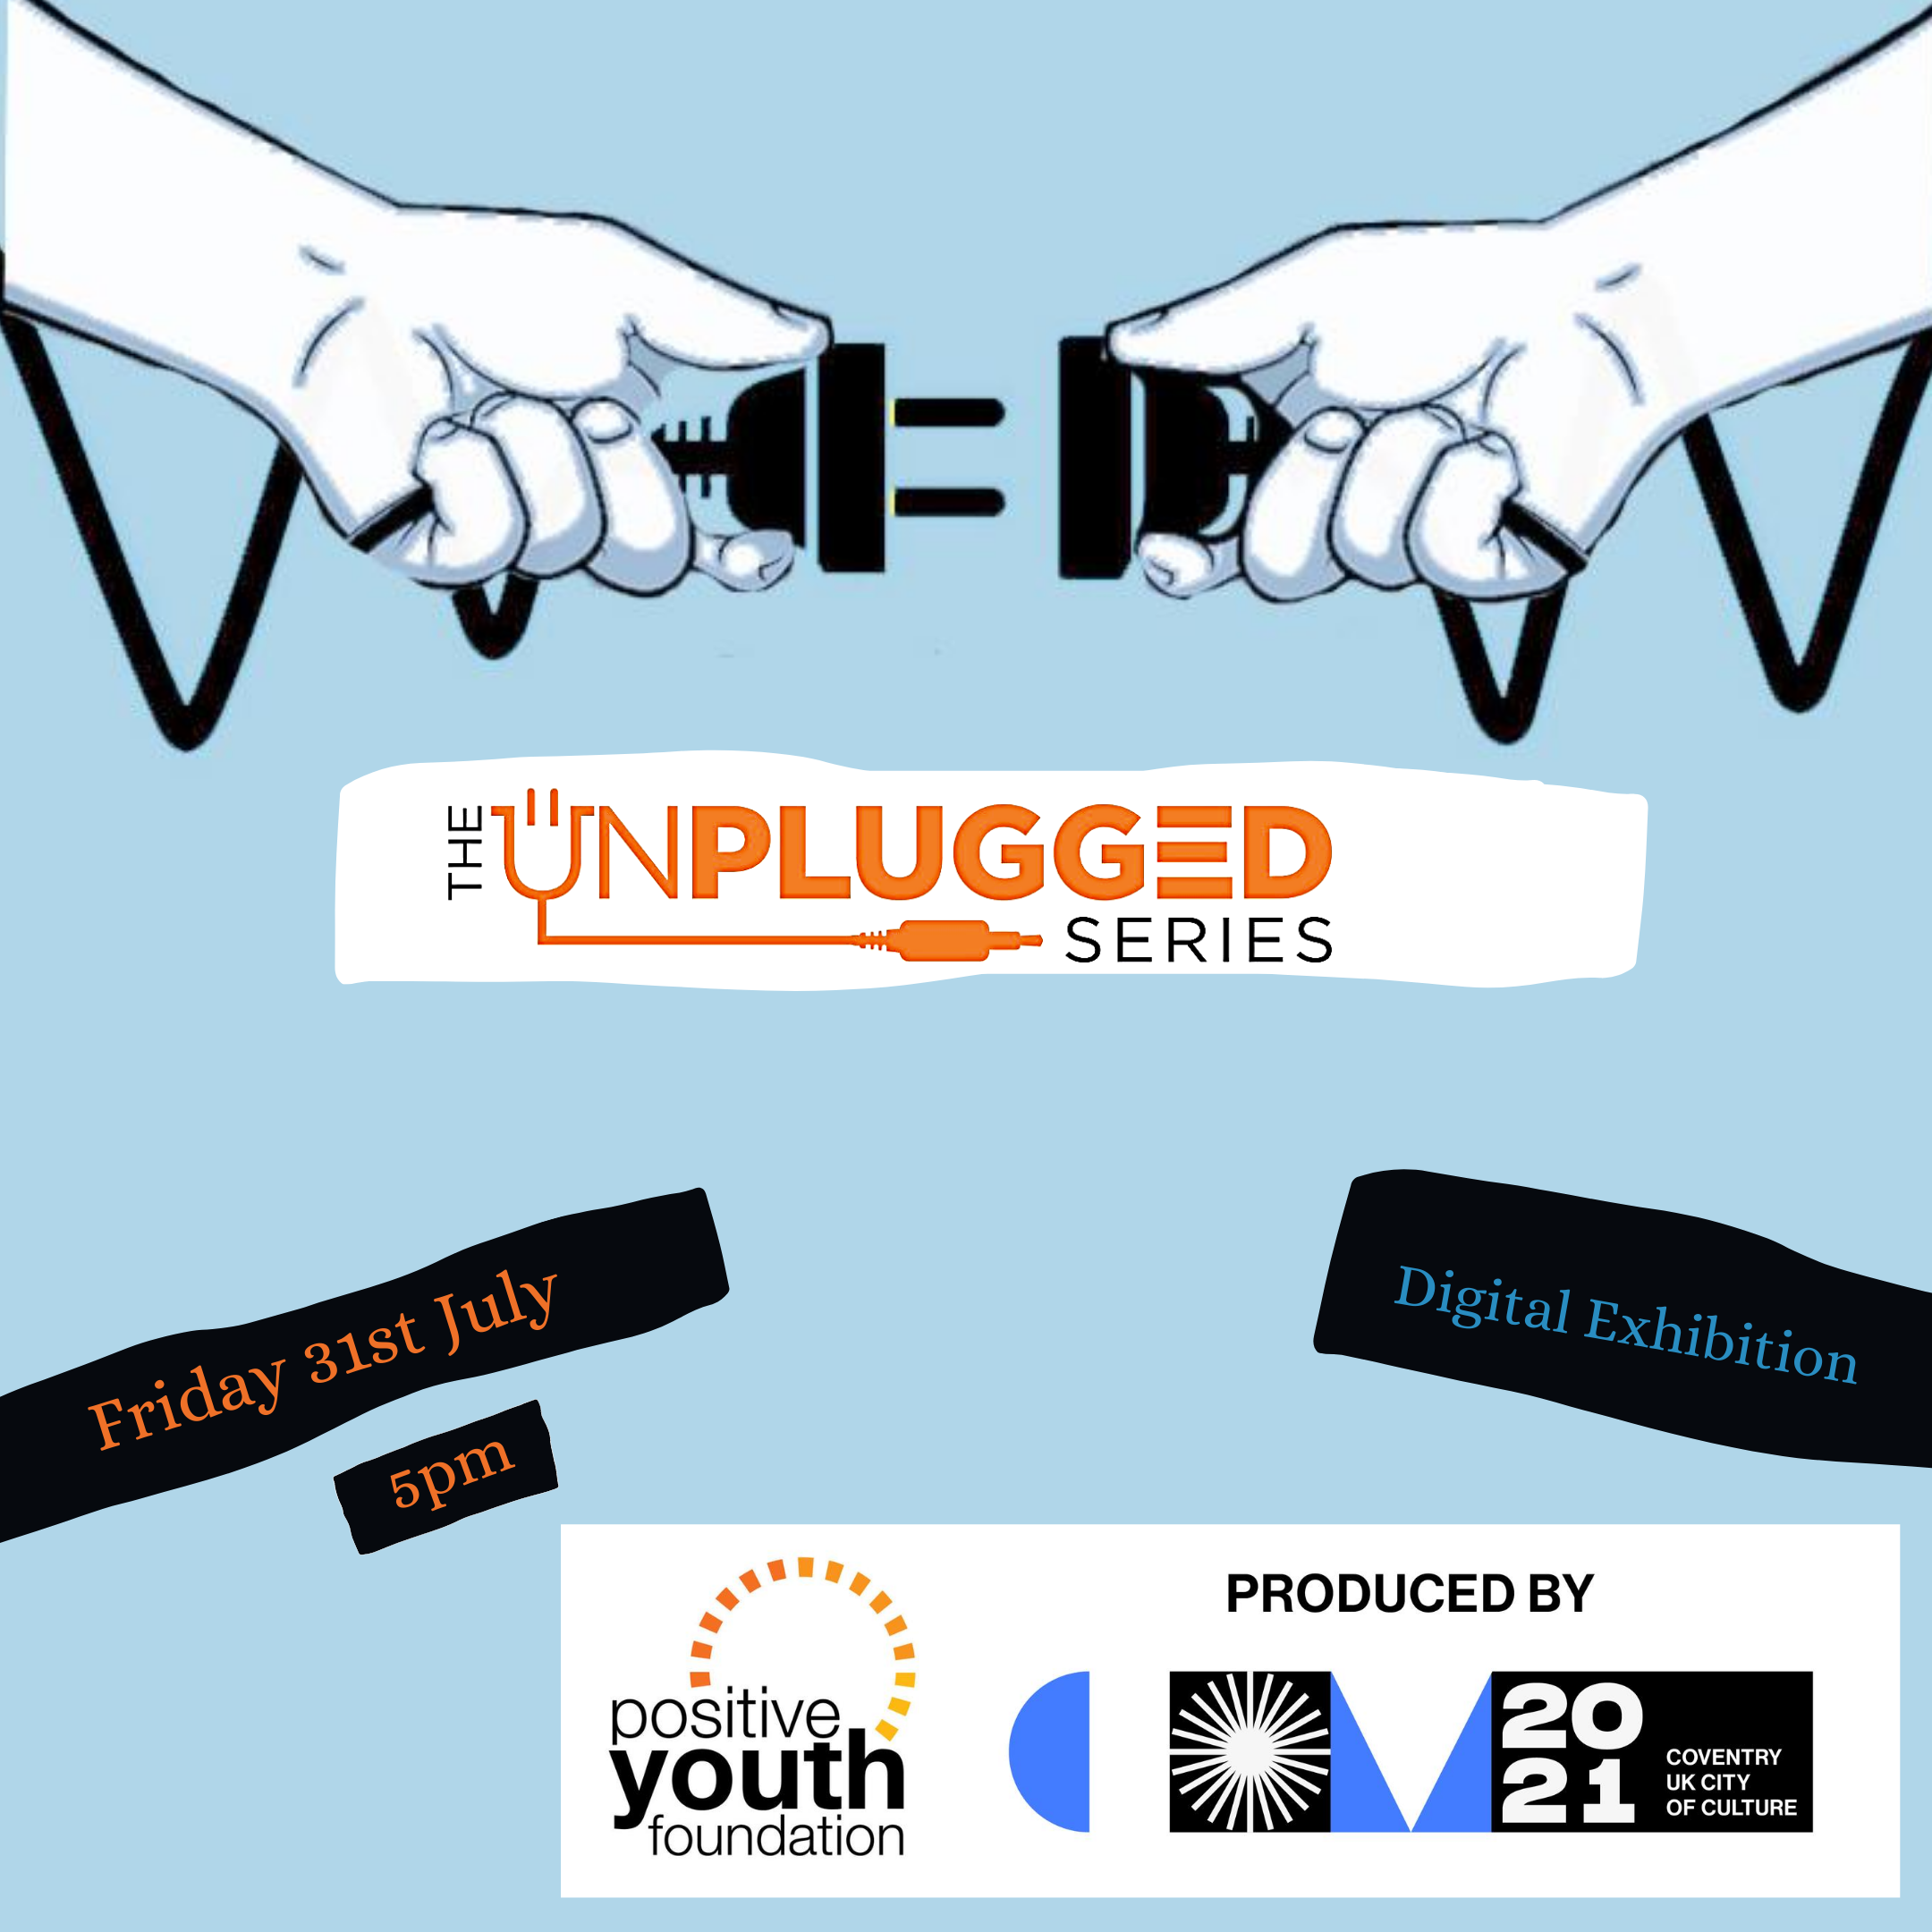 The Unplugged Series logo, showing two hands reaching to plug two electric cables together.